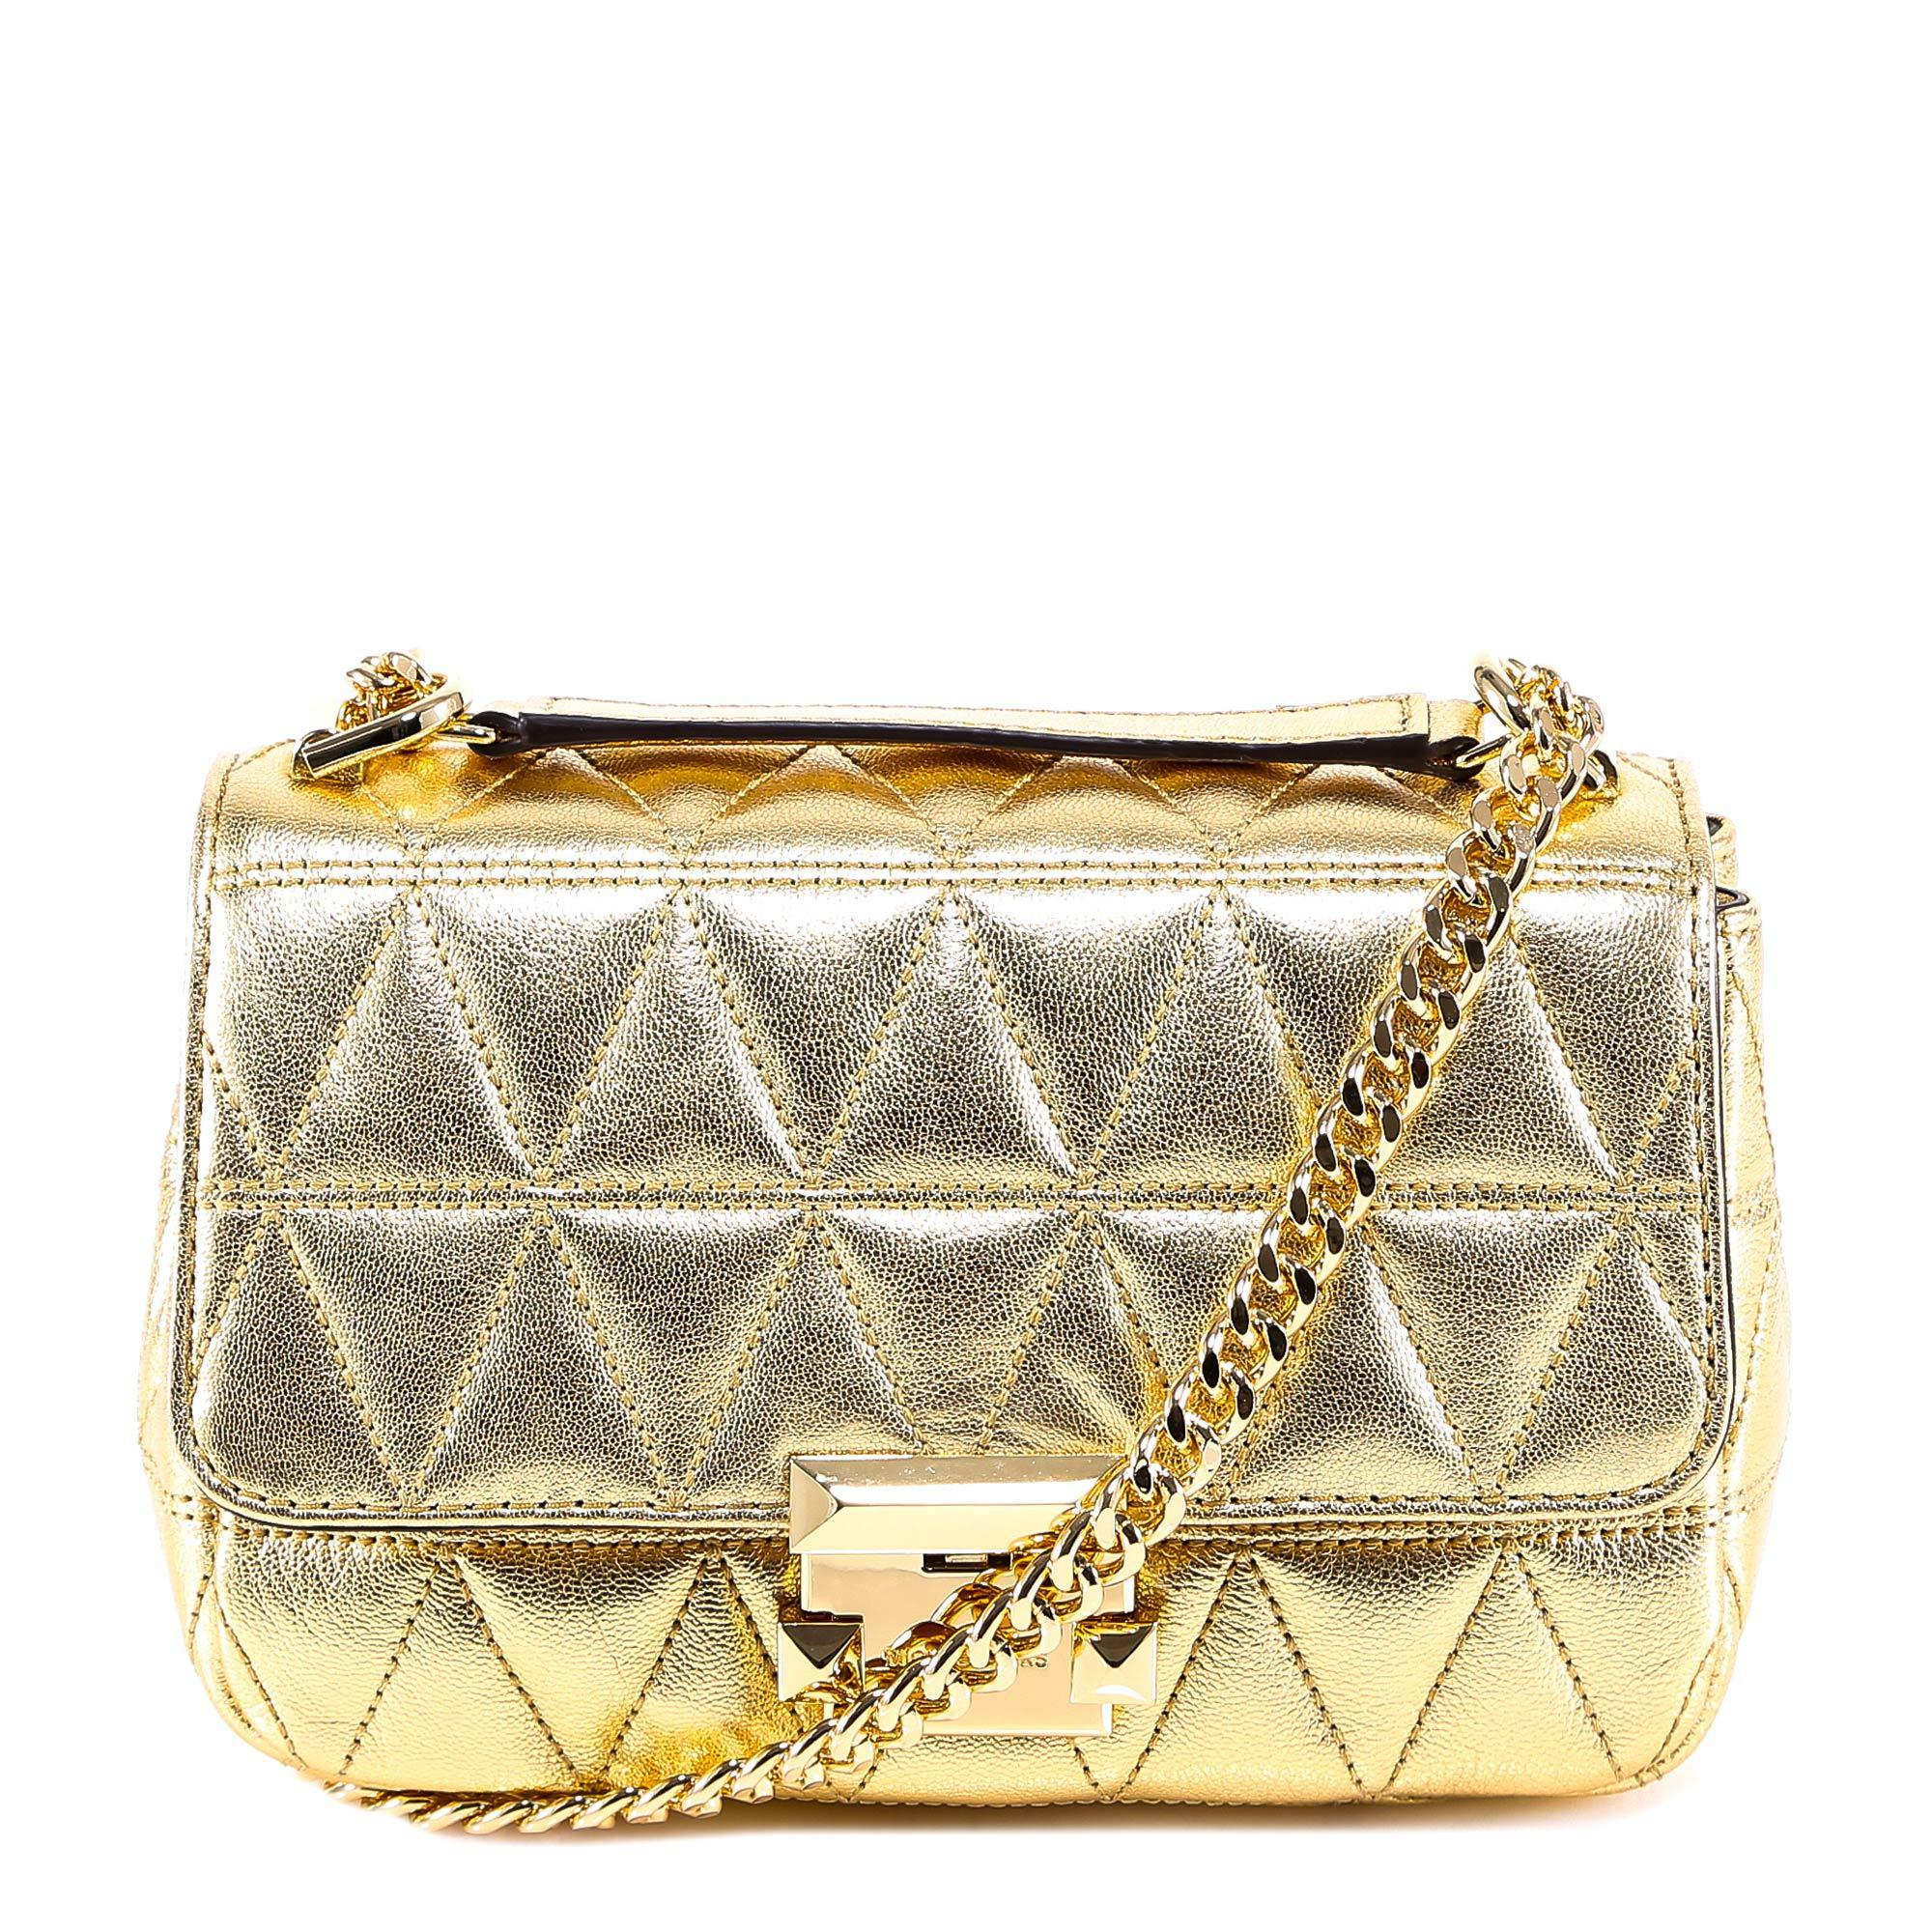 Michael Michael Kors Sloan Quilted Chain Shoulder Bag in Metallic - Lyst a254a8d6722e3